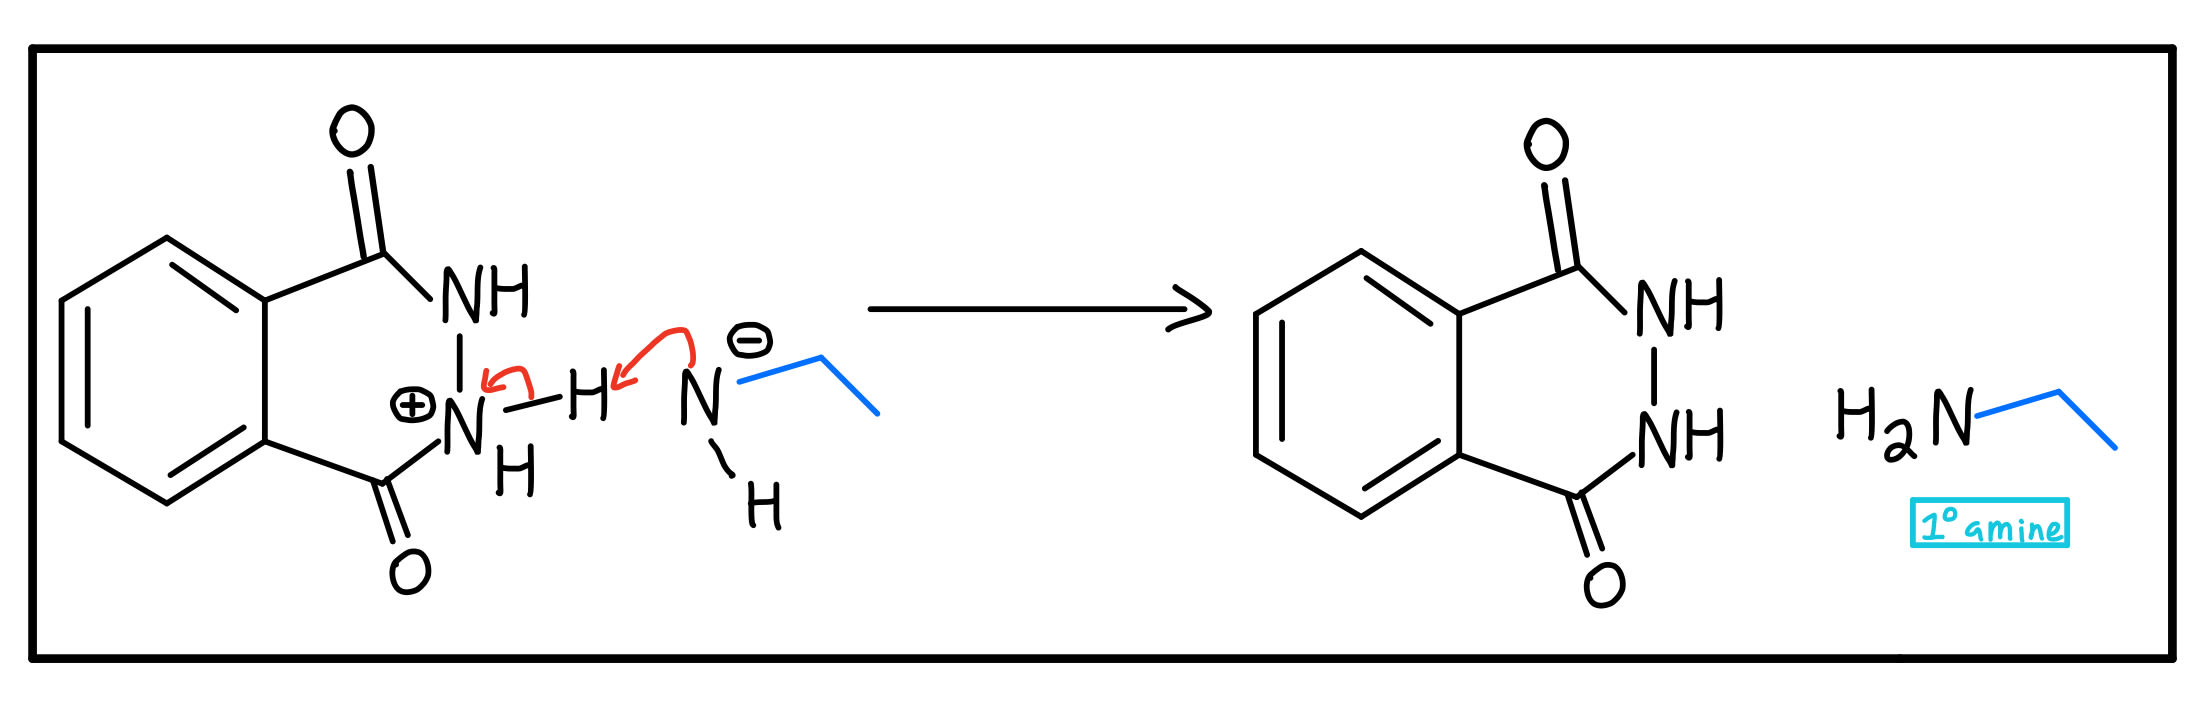 Primary amine formation